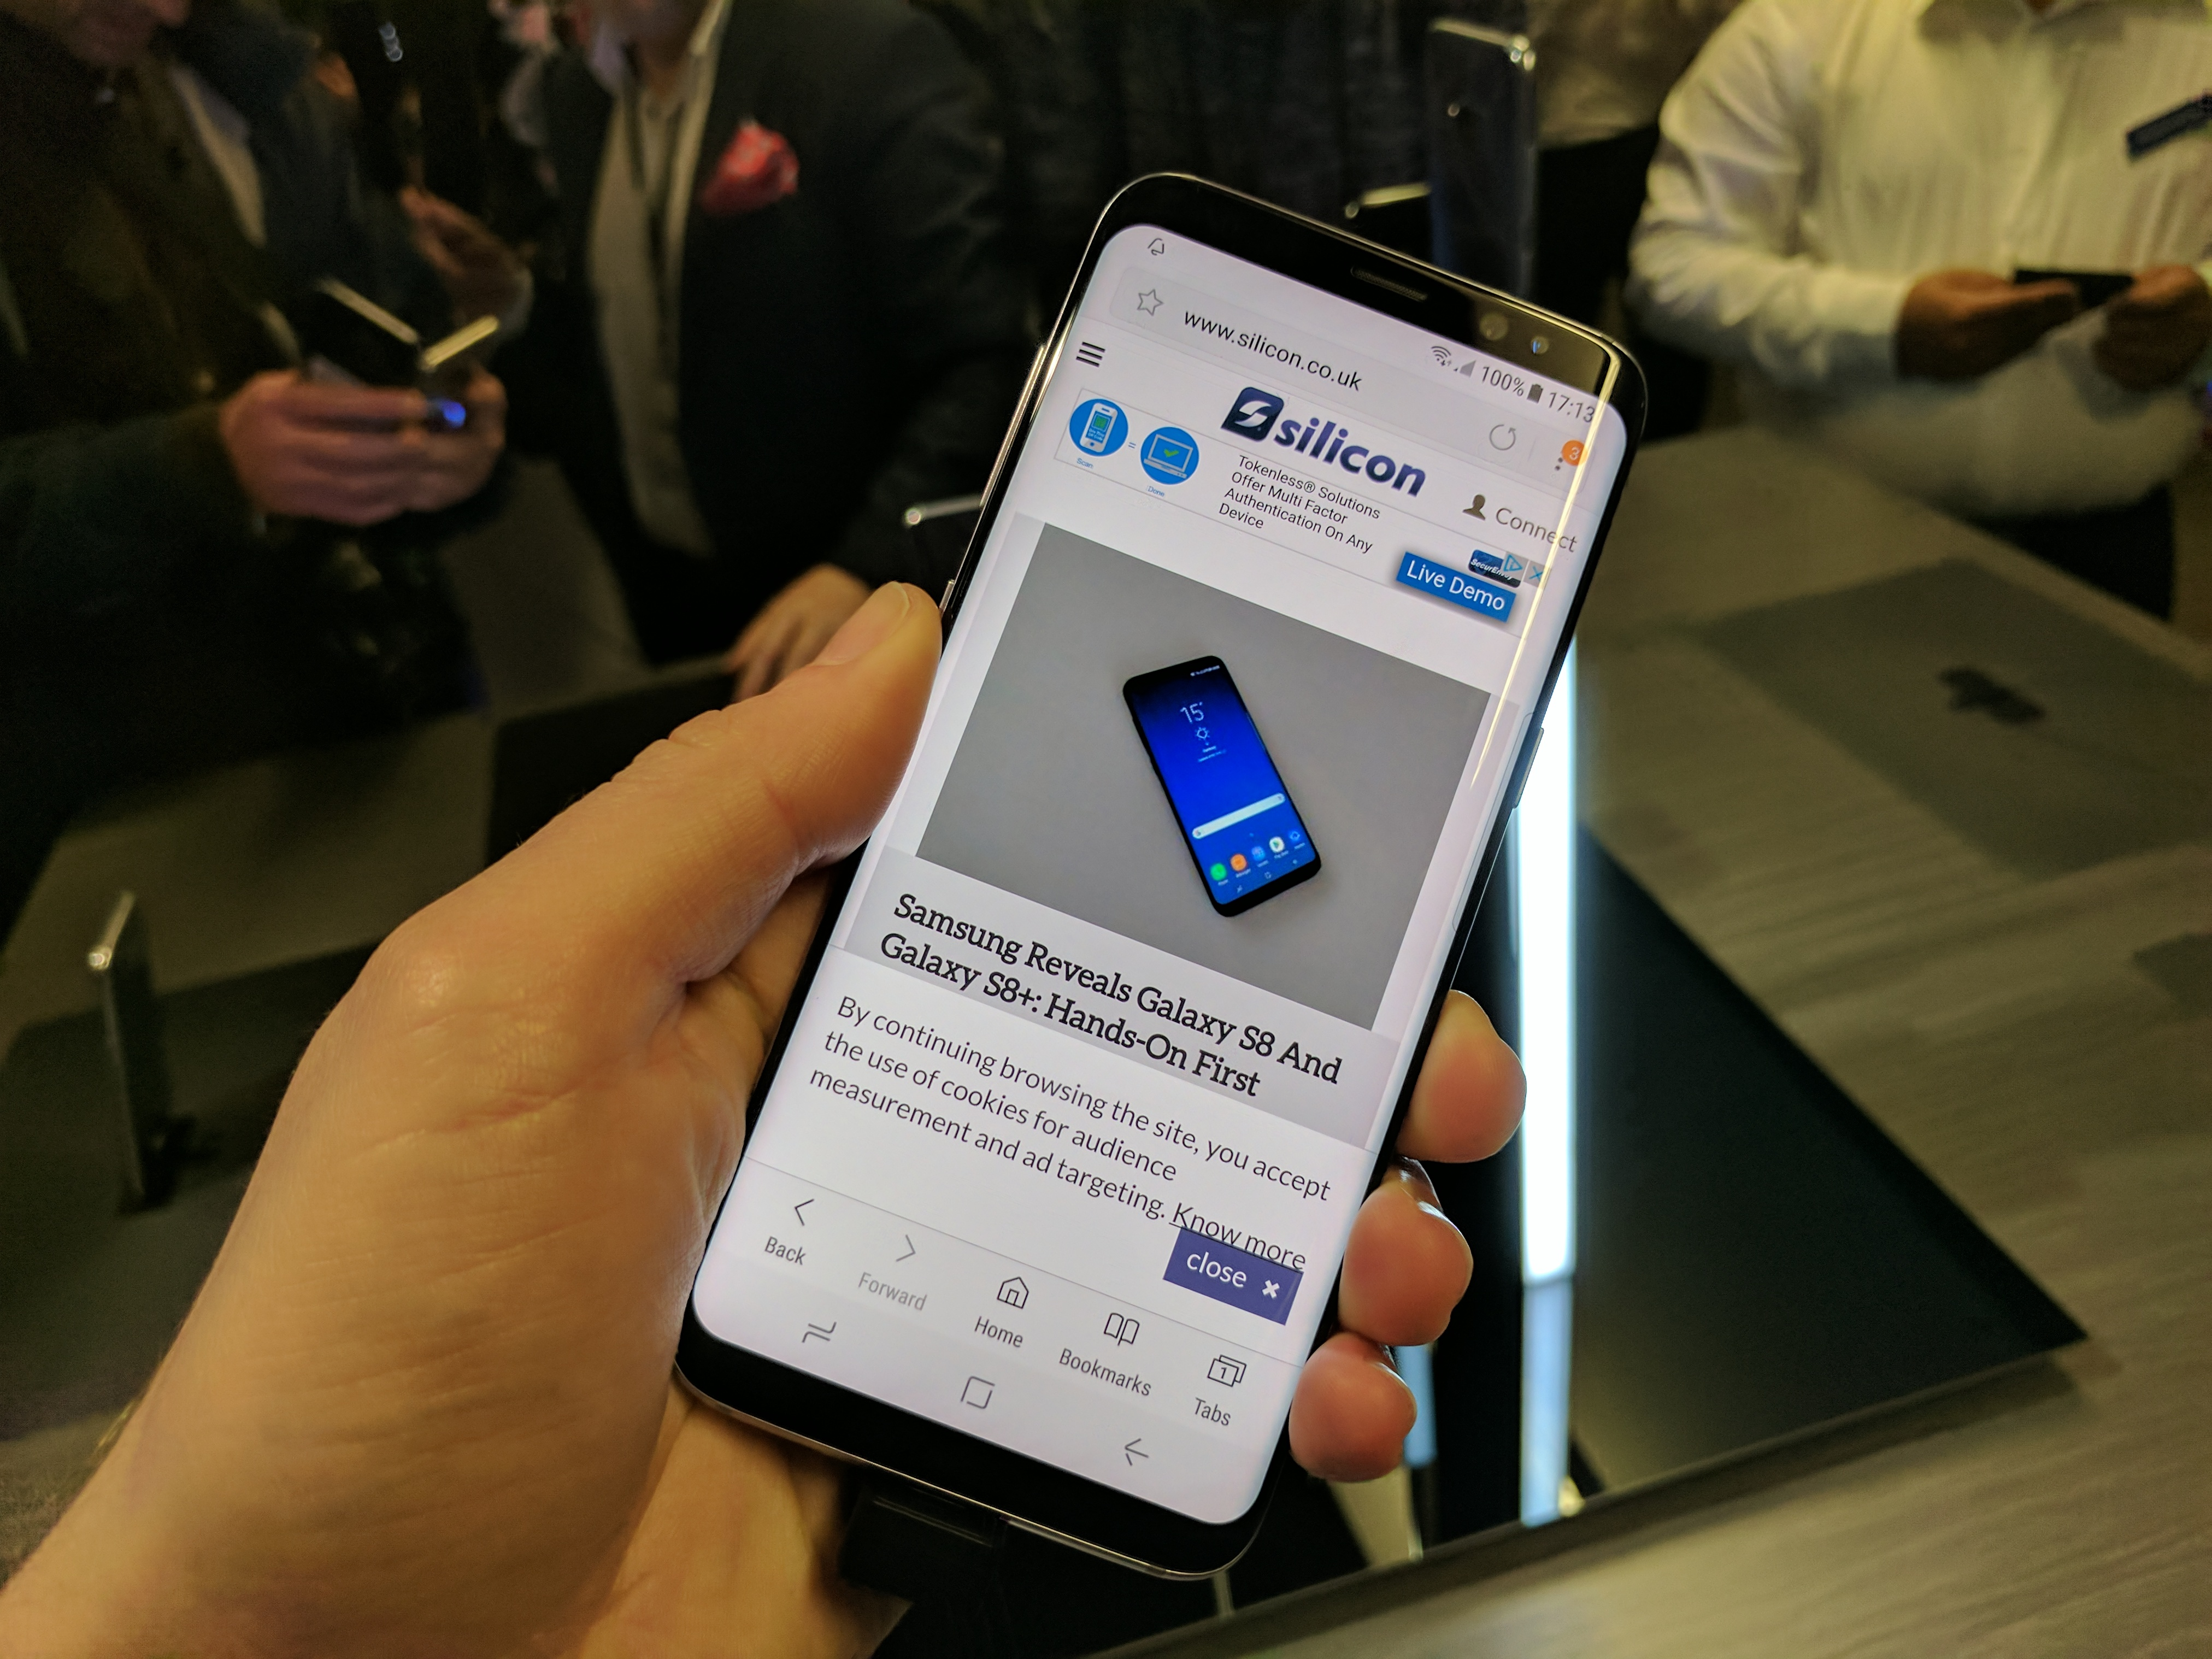 Samsung Galaxy S8 Arrives In The UK: Hands-On Review